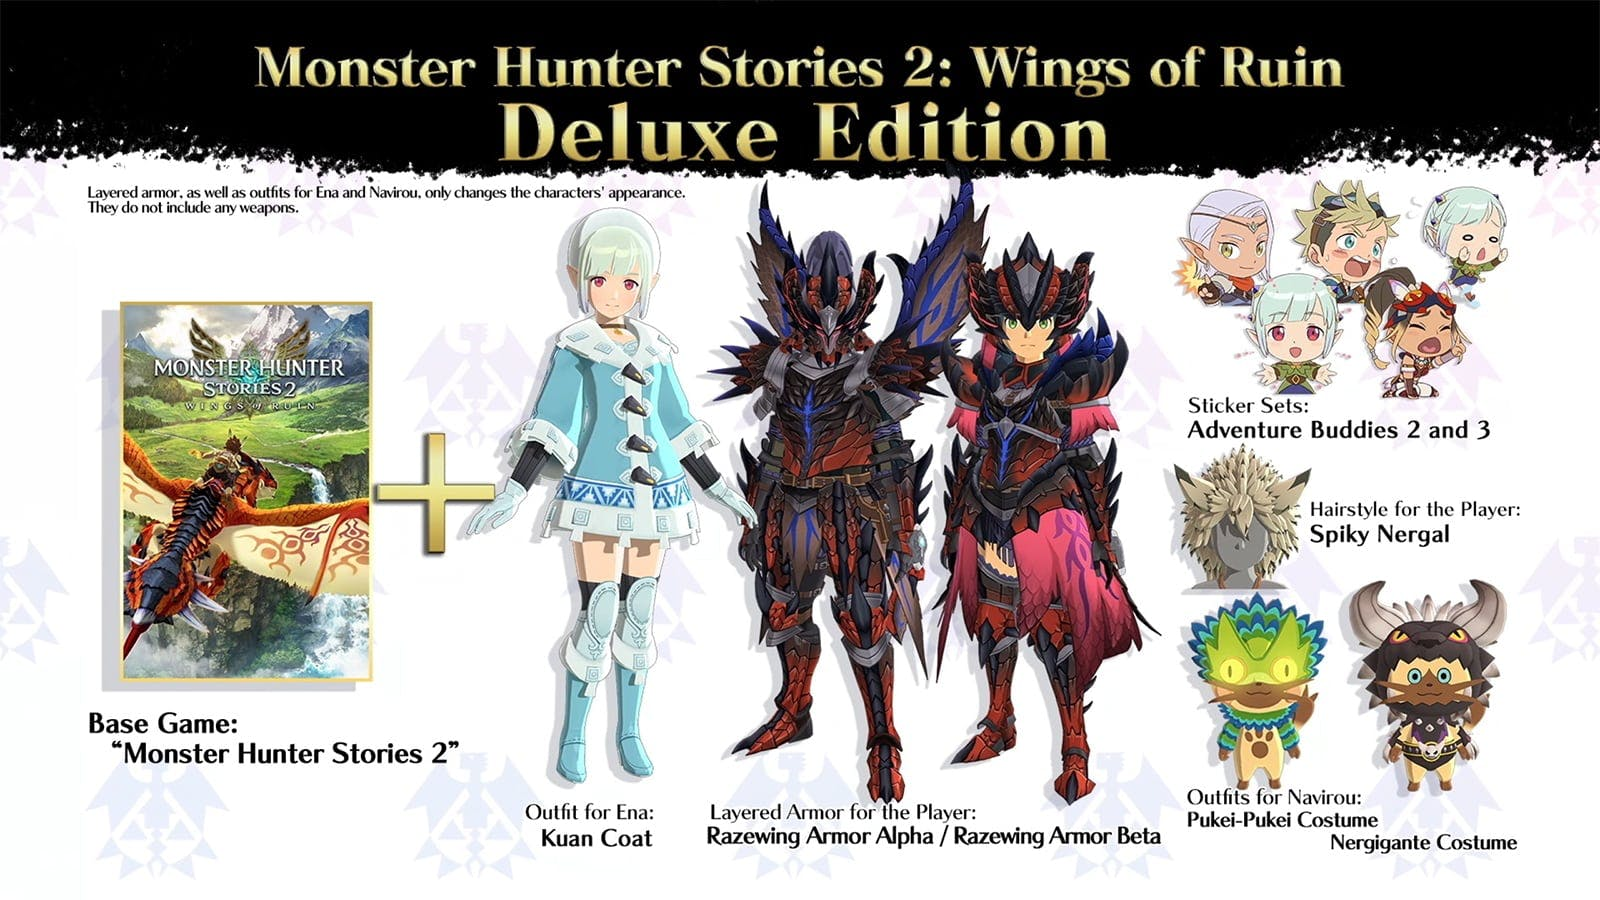 https://images.prismic.io/fanatical/d5df98db-5f7c-437e-a78d-1db52018db5f_monster-hunter-stories-2-wings-of-ruin-deluxe.jpg?auto=compress,format